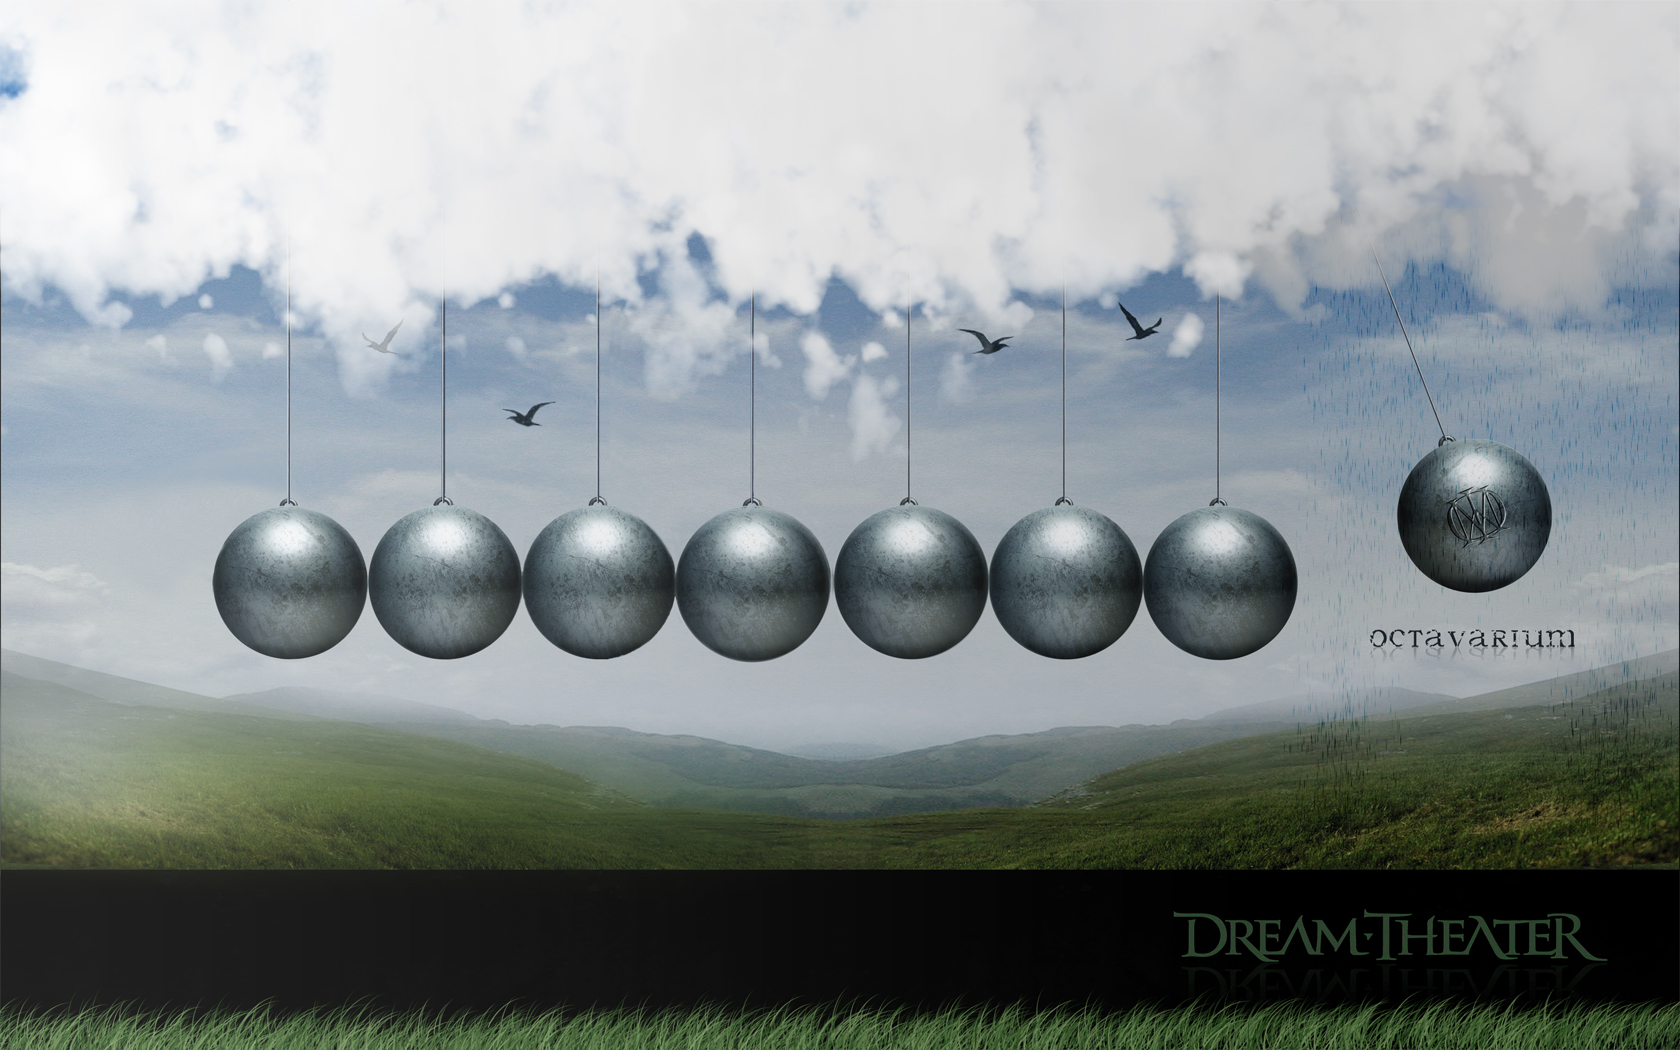 Best Of Dream Theater Wallpapers Hd For: 30 Dream Theater HD Wallpapers